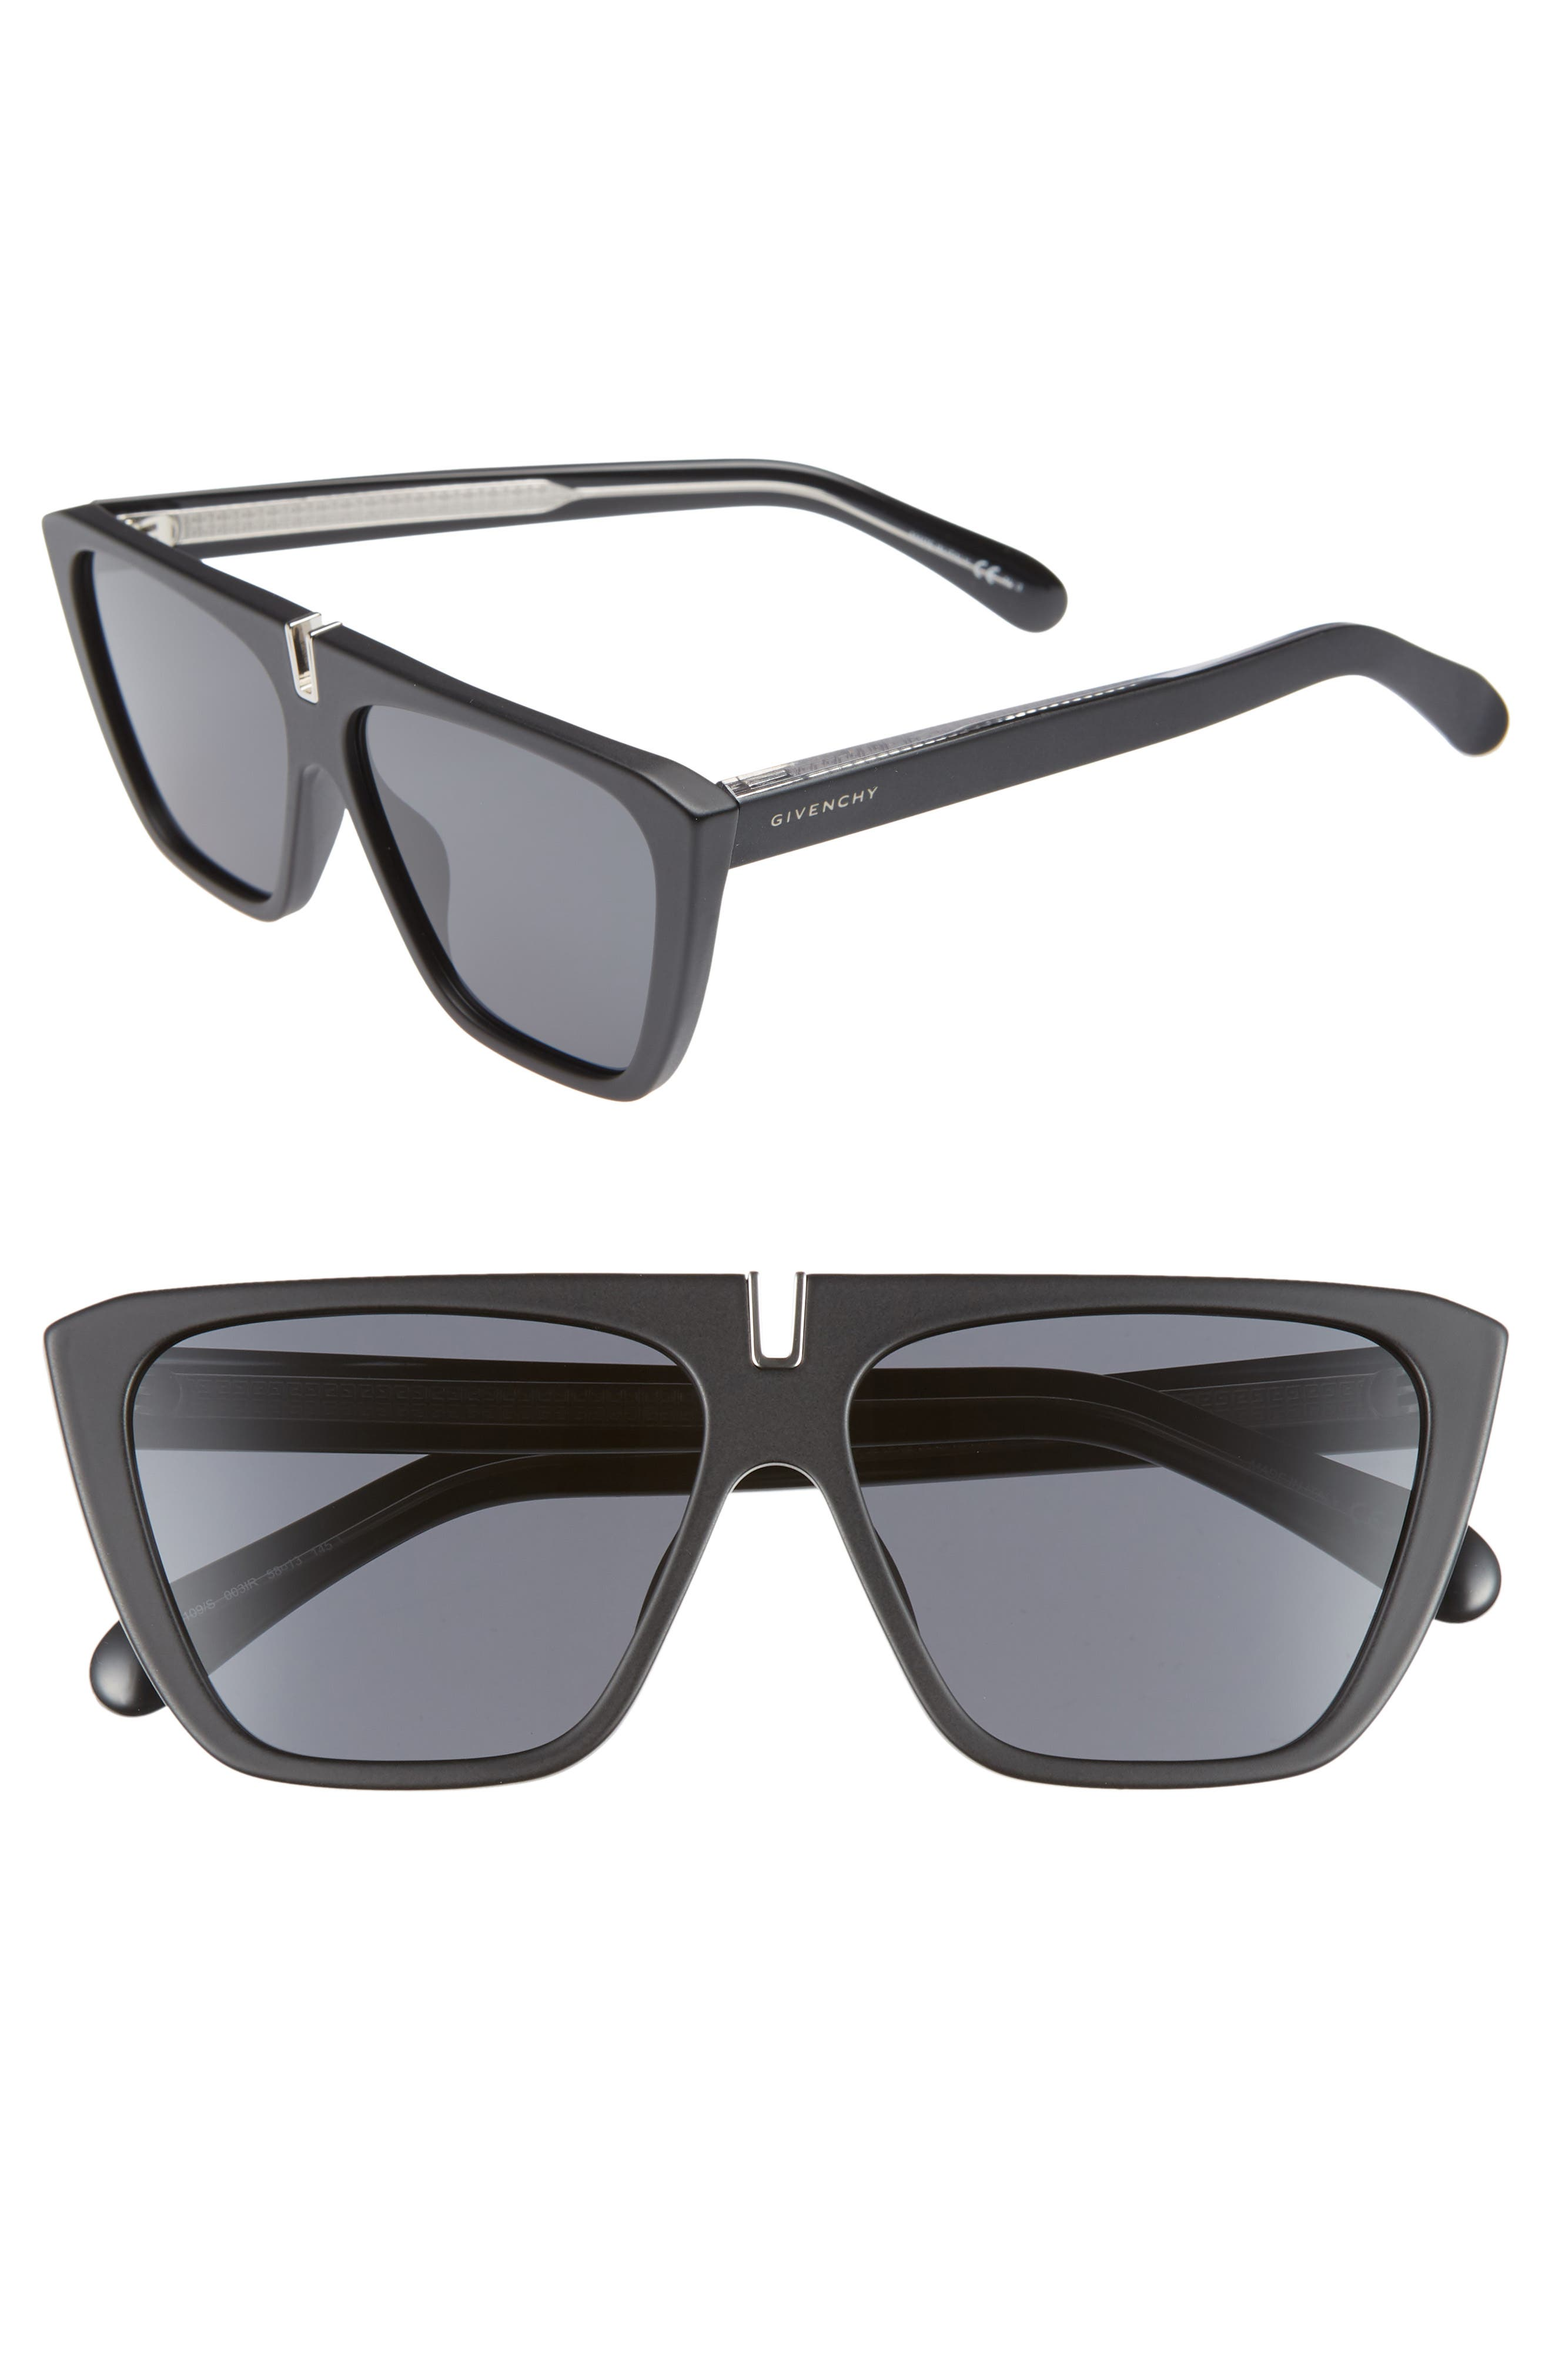 58mm Flat Top Sunglasses,                             Main thumbnail 1, color,                             MATTE BLACK